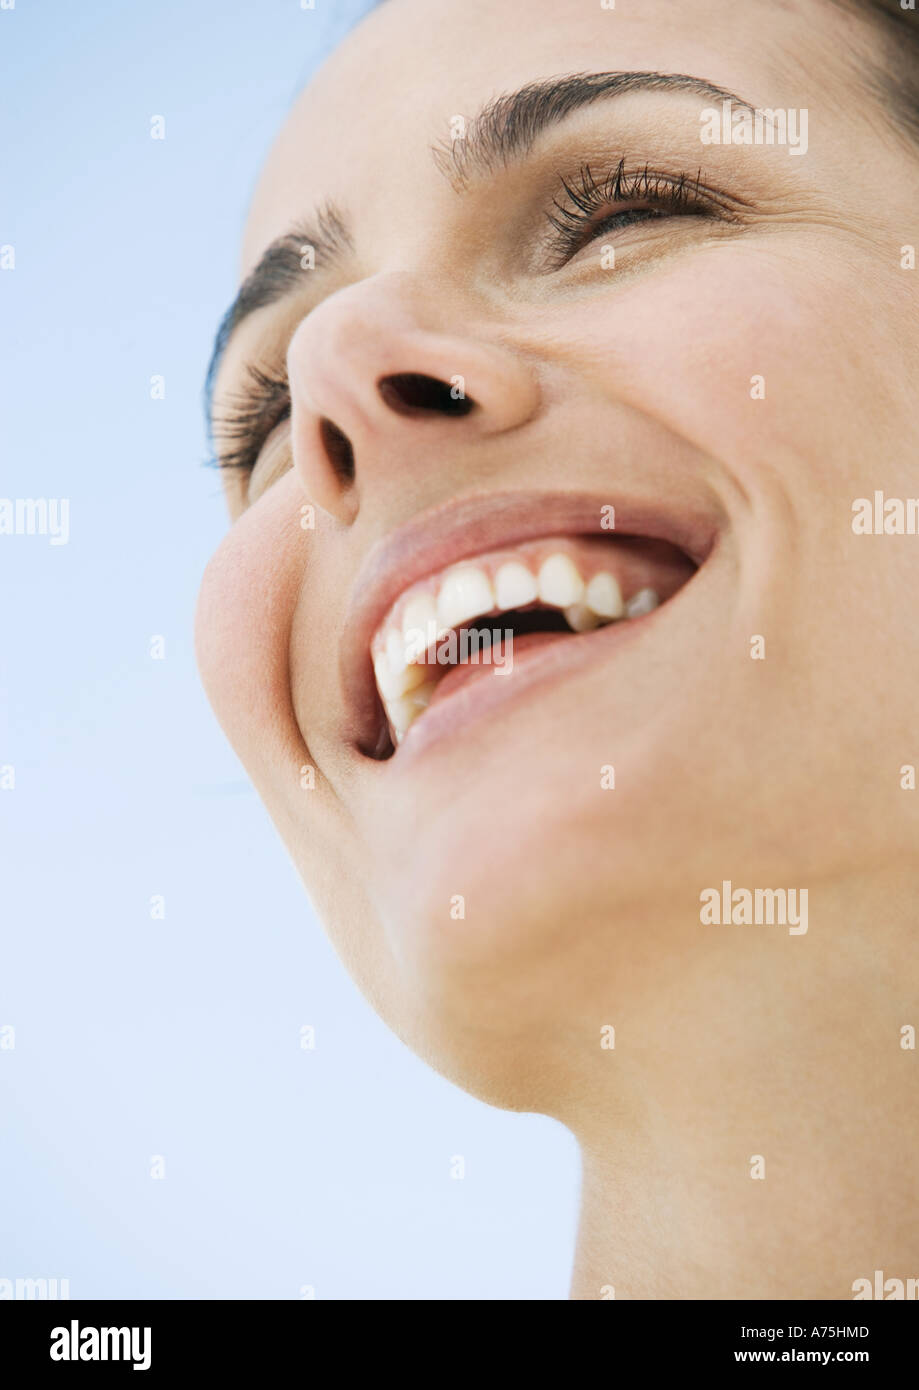 Woman smiling, low angle view - Stock Image